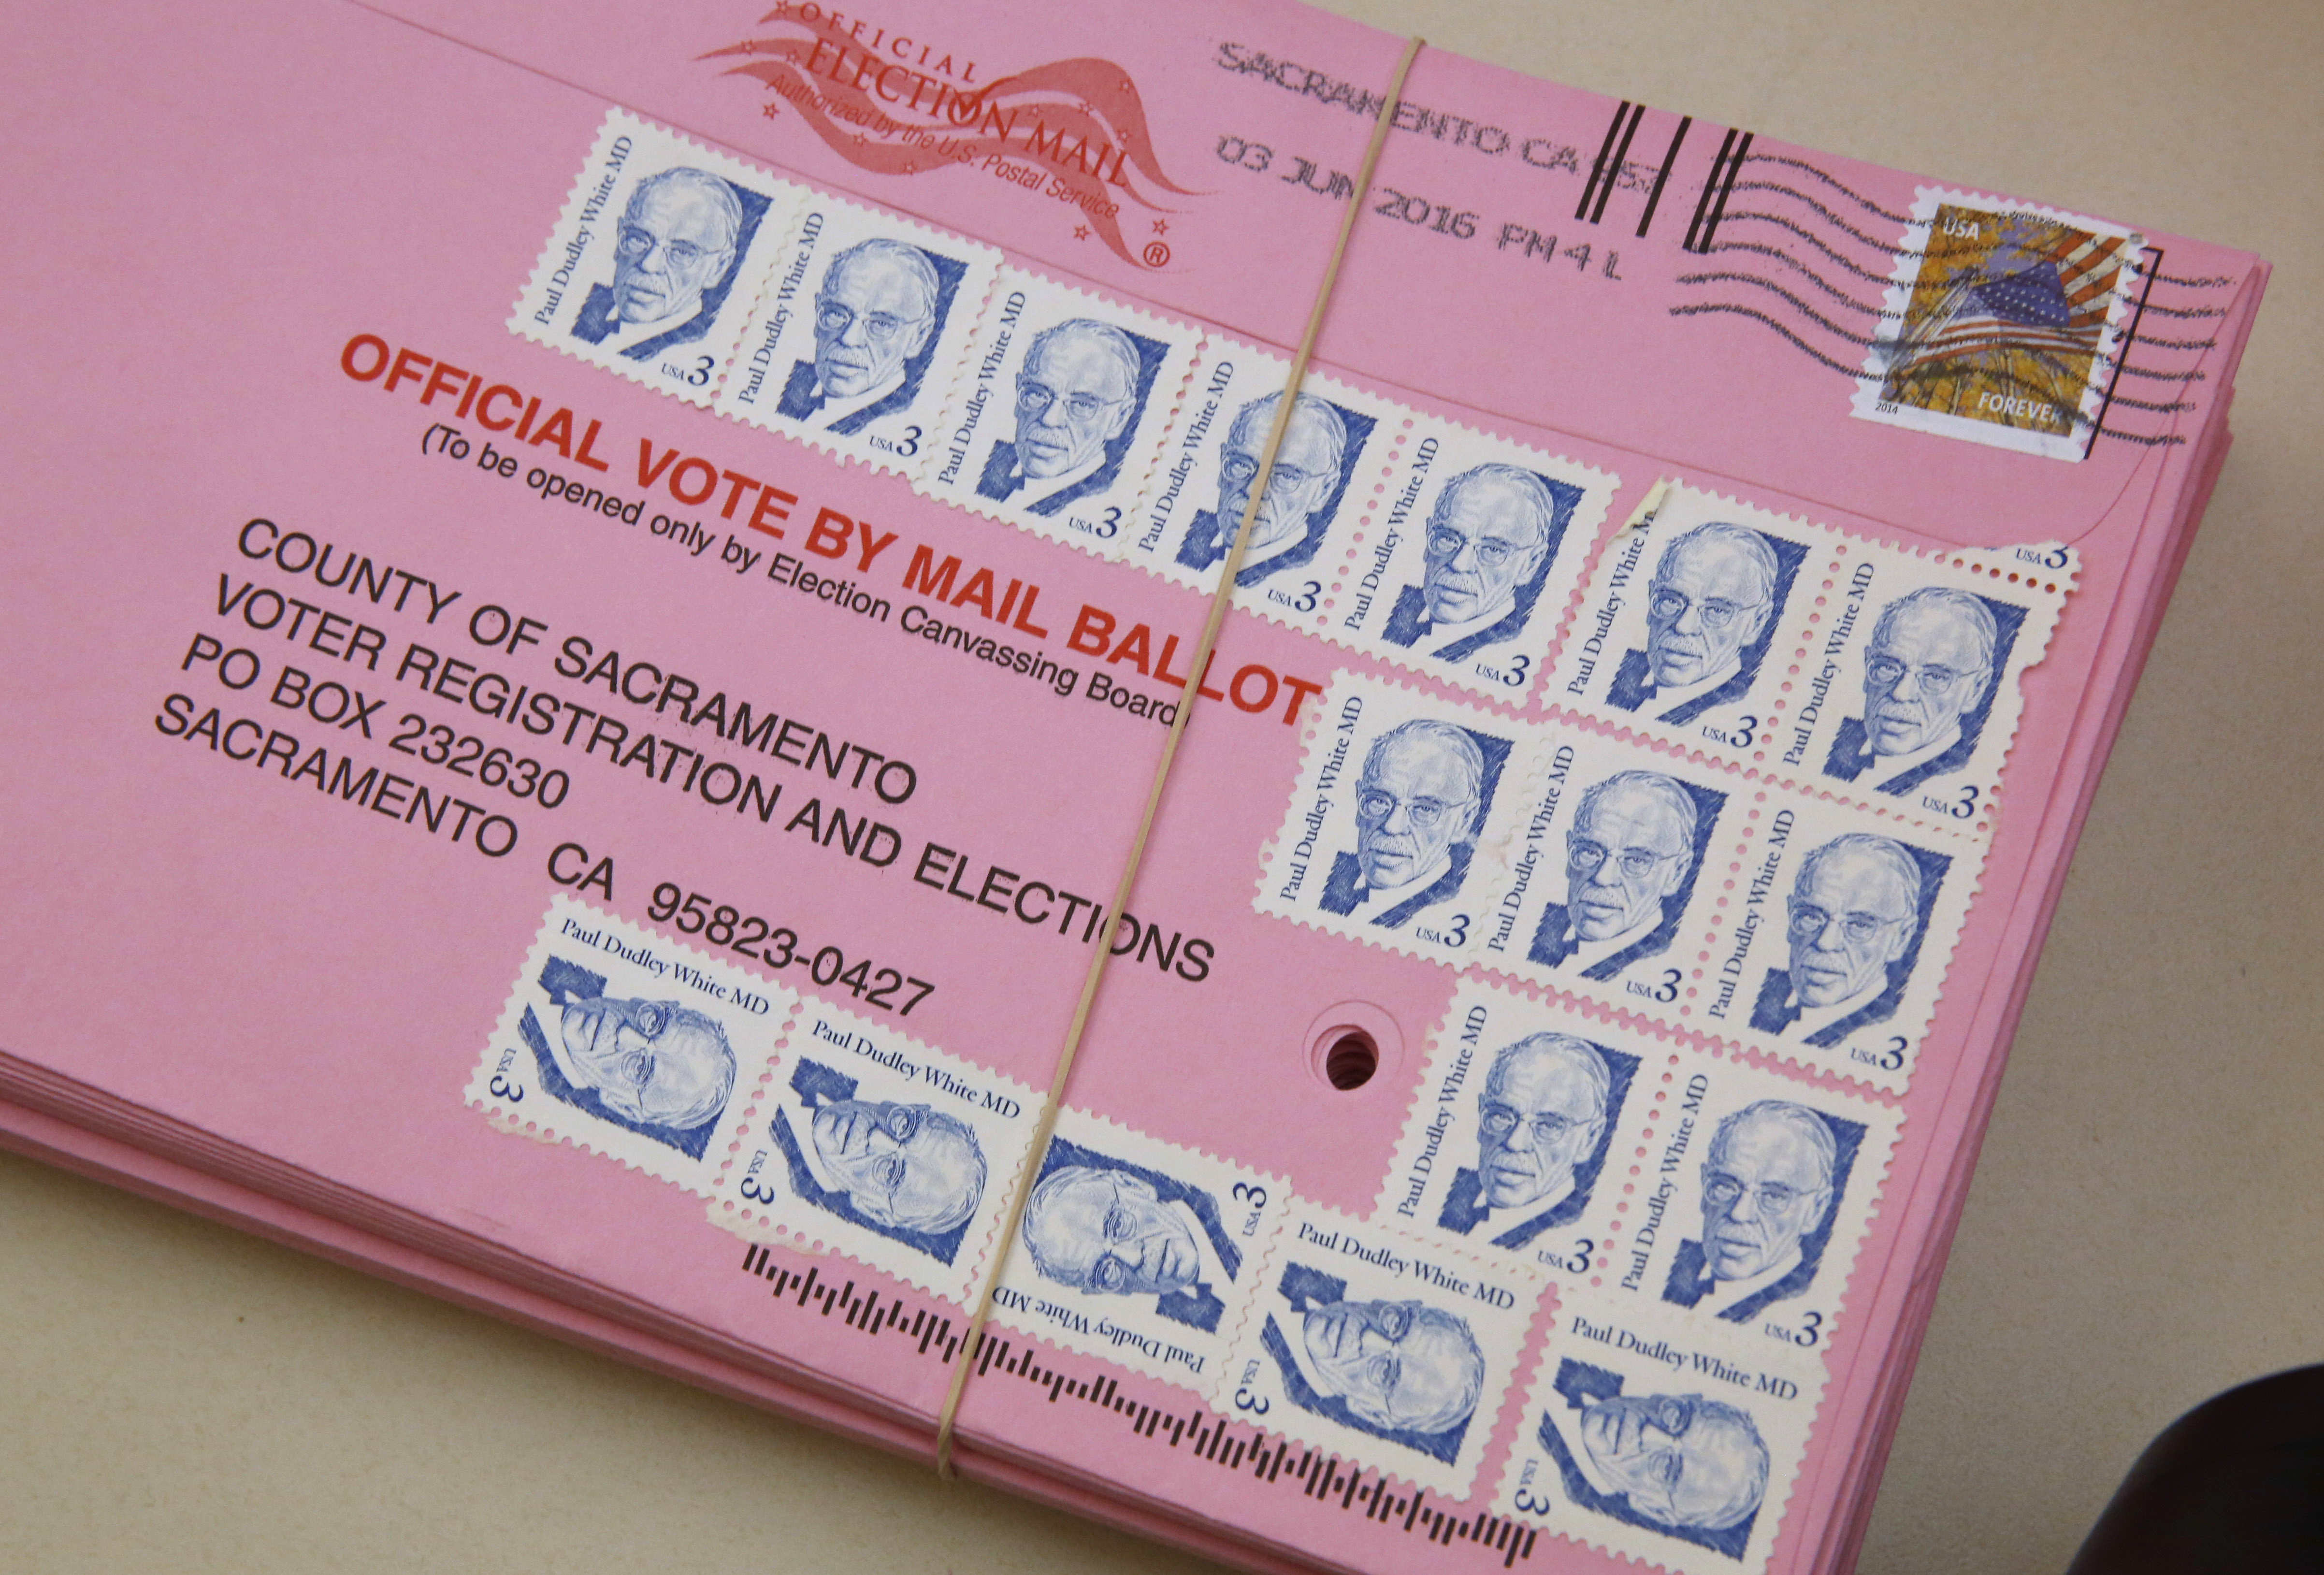 More than 100,000 California mail-in ballots were rejected because of mistakes thumbnail